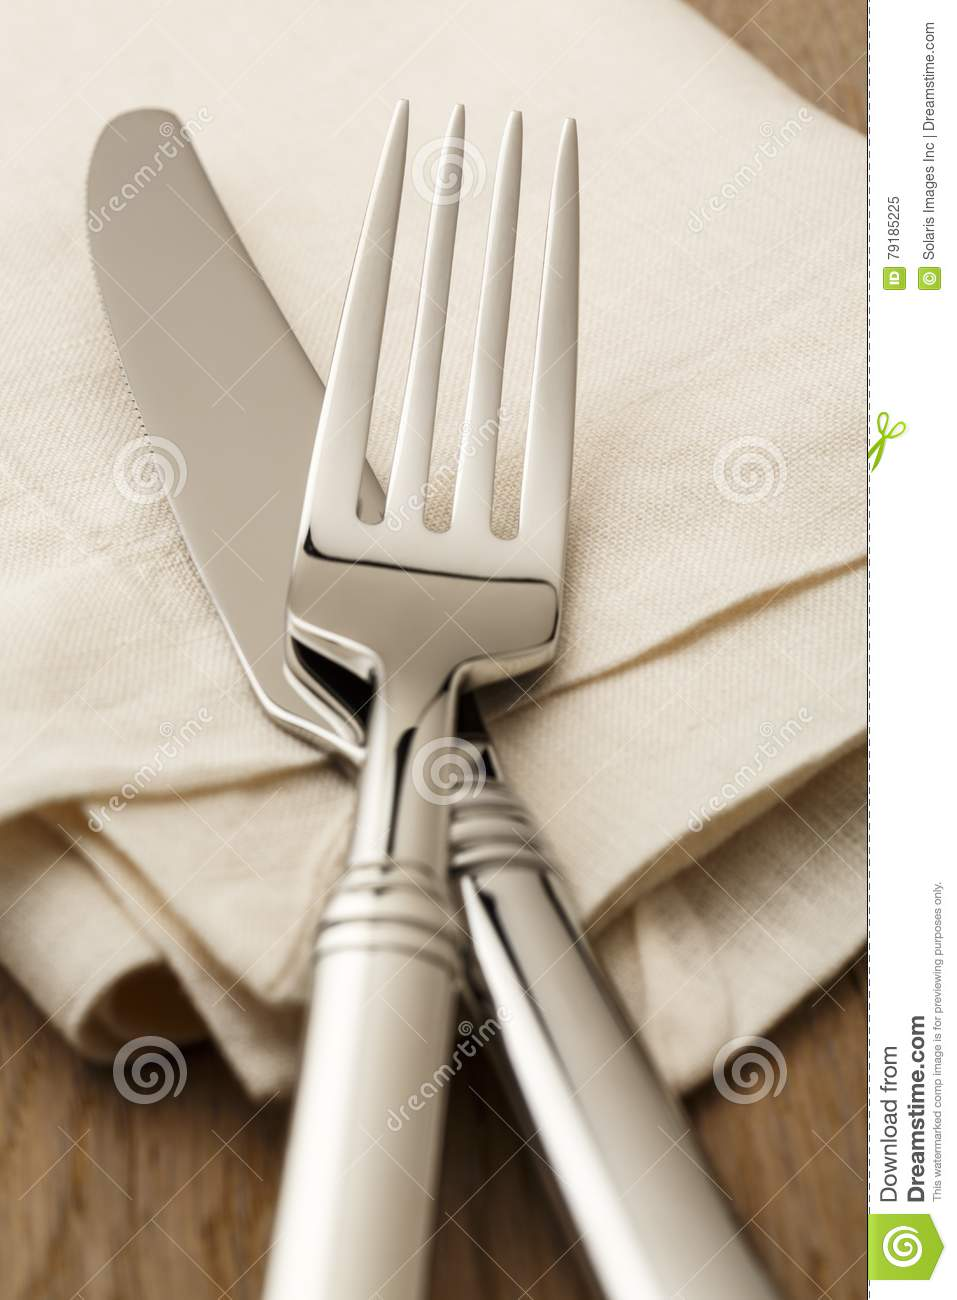 High quality fork and knife lay on an ivory linen napkin on a wood table. Casual fine dining concept. & Simple Classic Table Setting Place Setting With High Quality ...